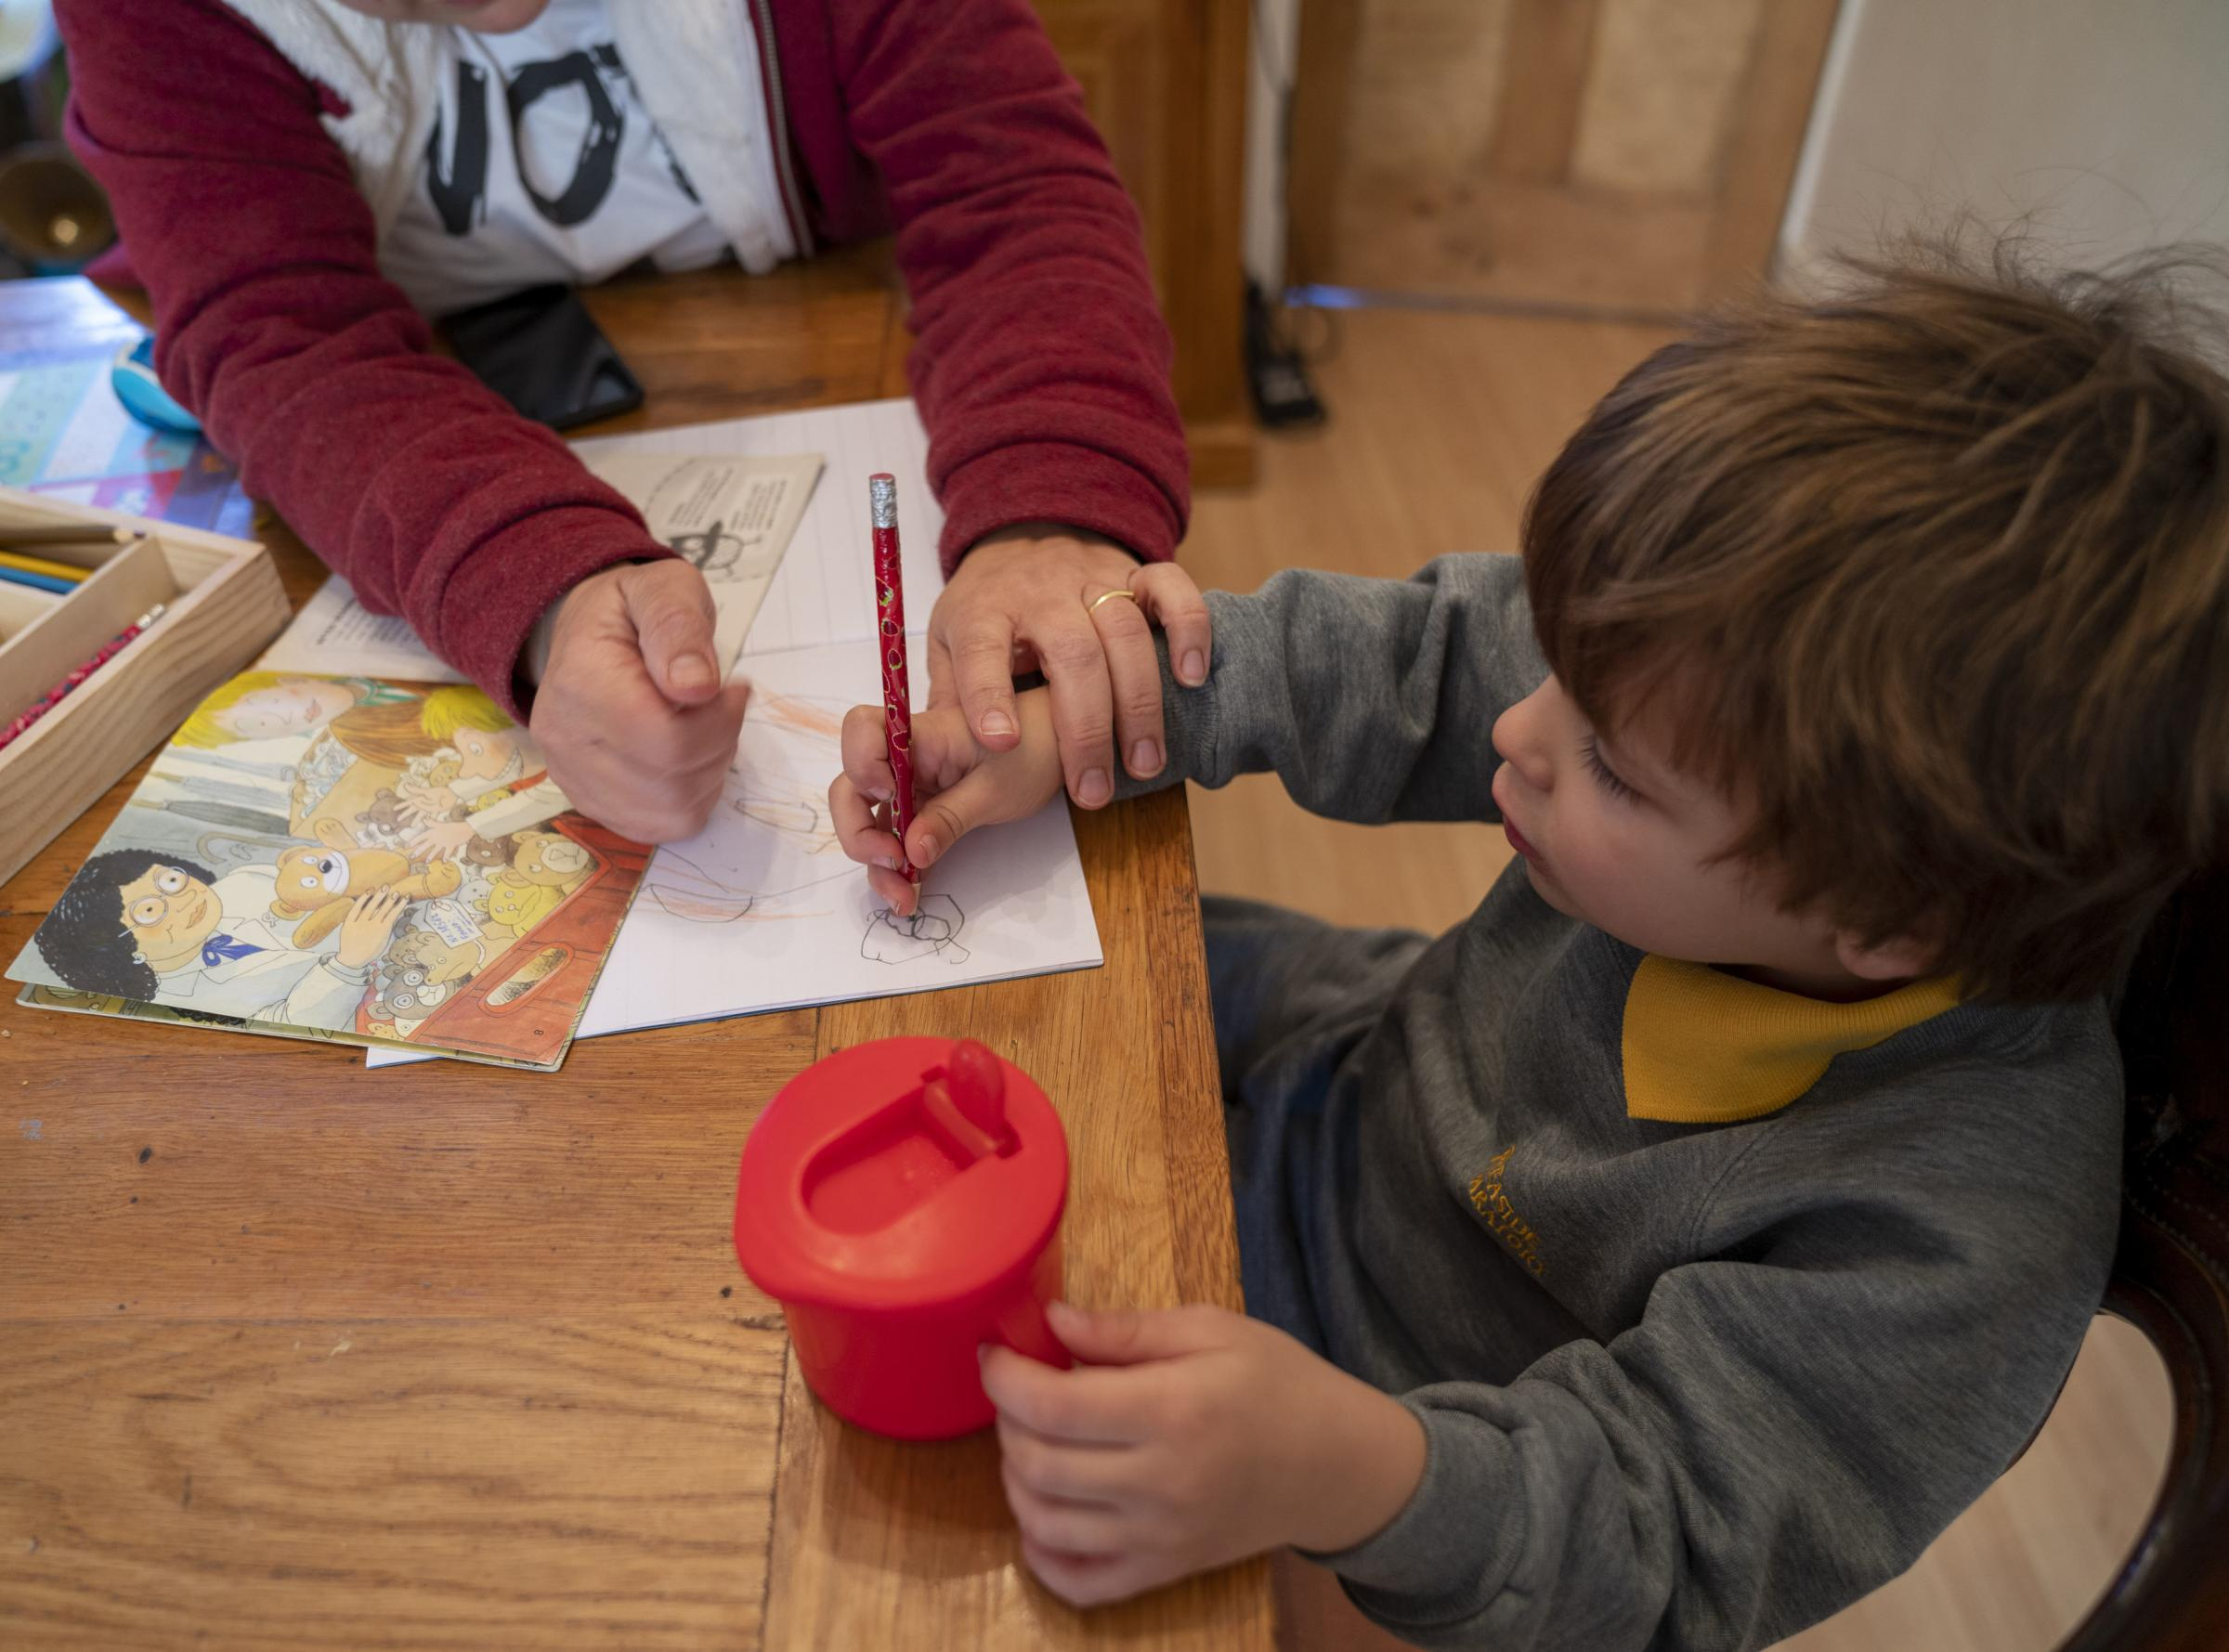 Send in YOUR pictures and tips for home-schooling children